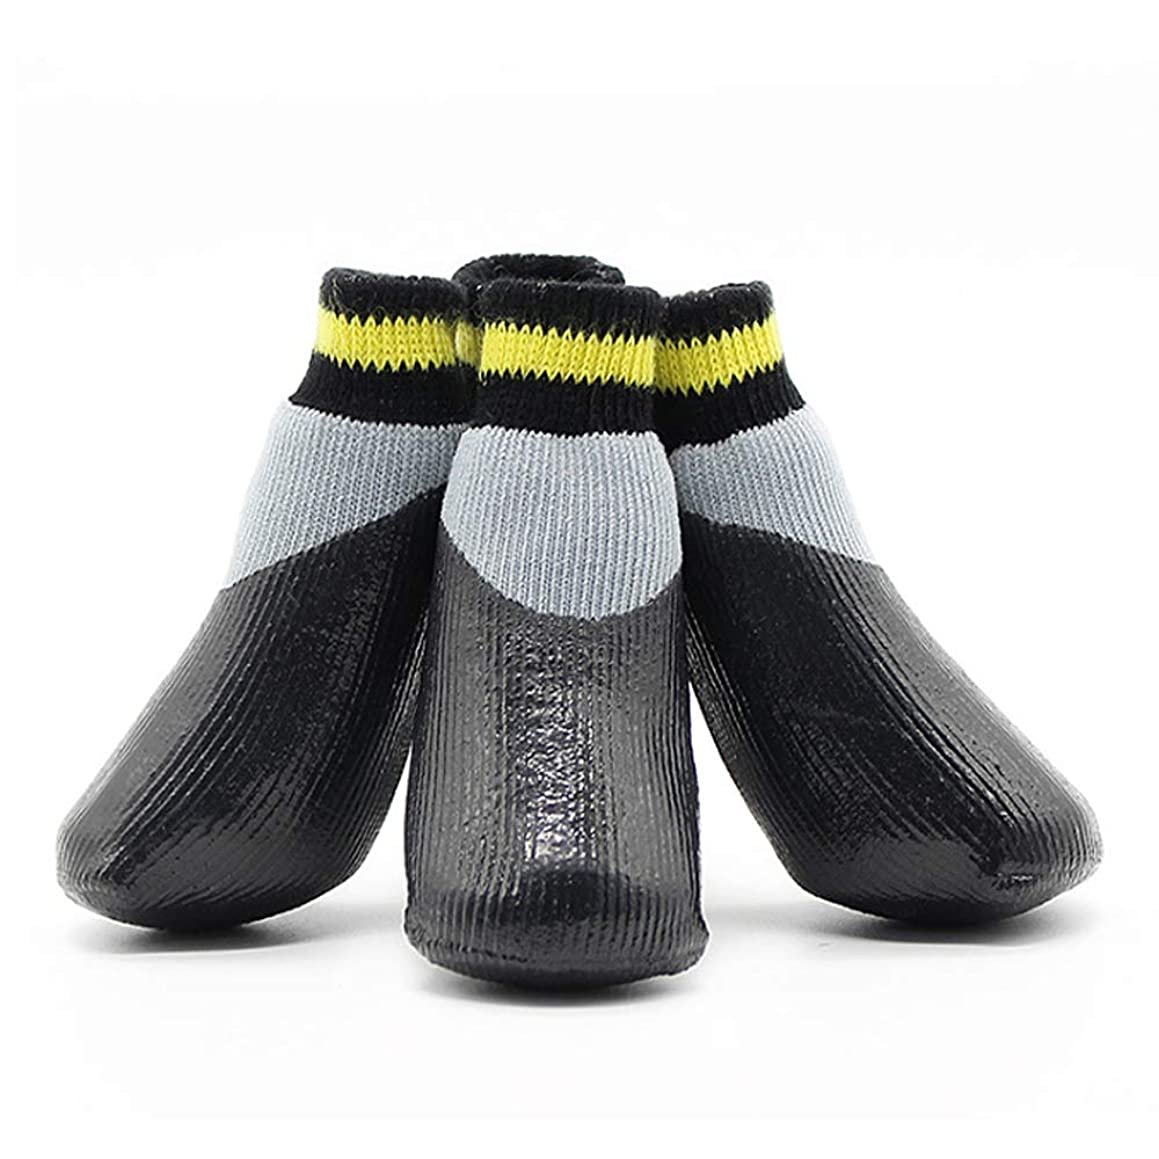 Dog Socks with Straps Traction Control Outdoor Waterproof Pet Socks Boot Shoes for Small Medium Large Dogs 4pcs